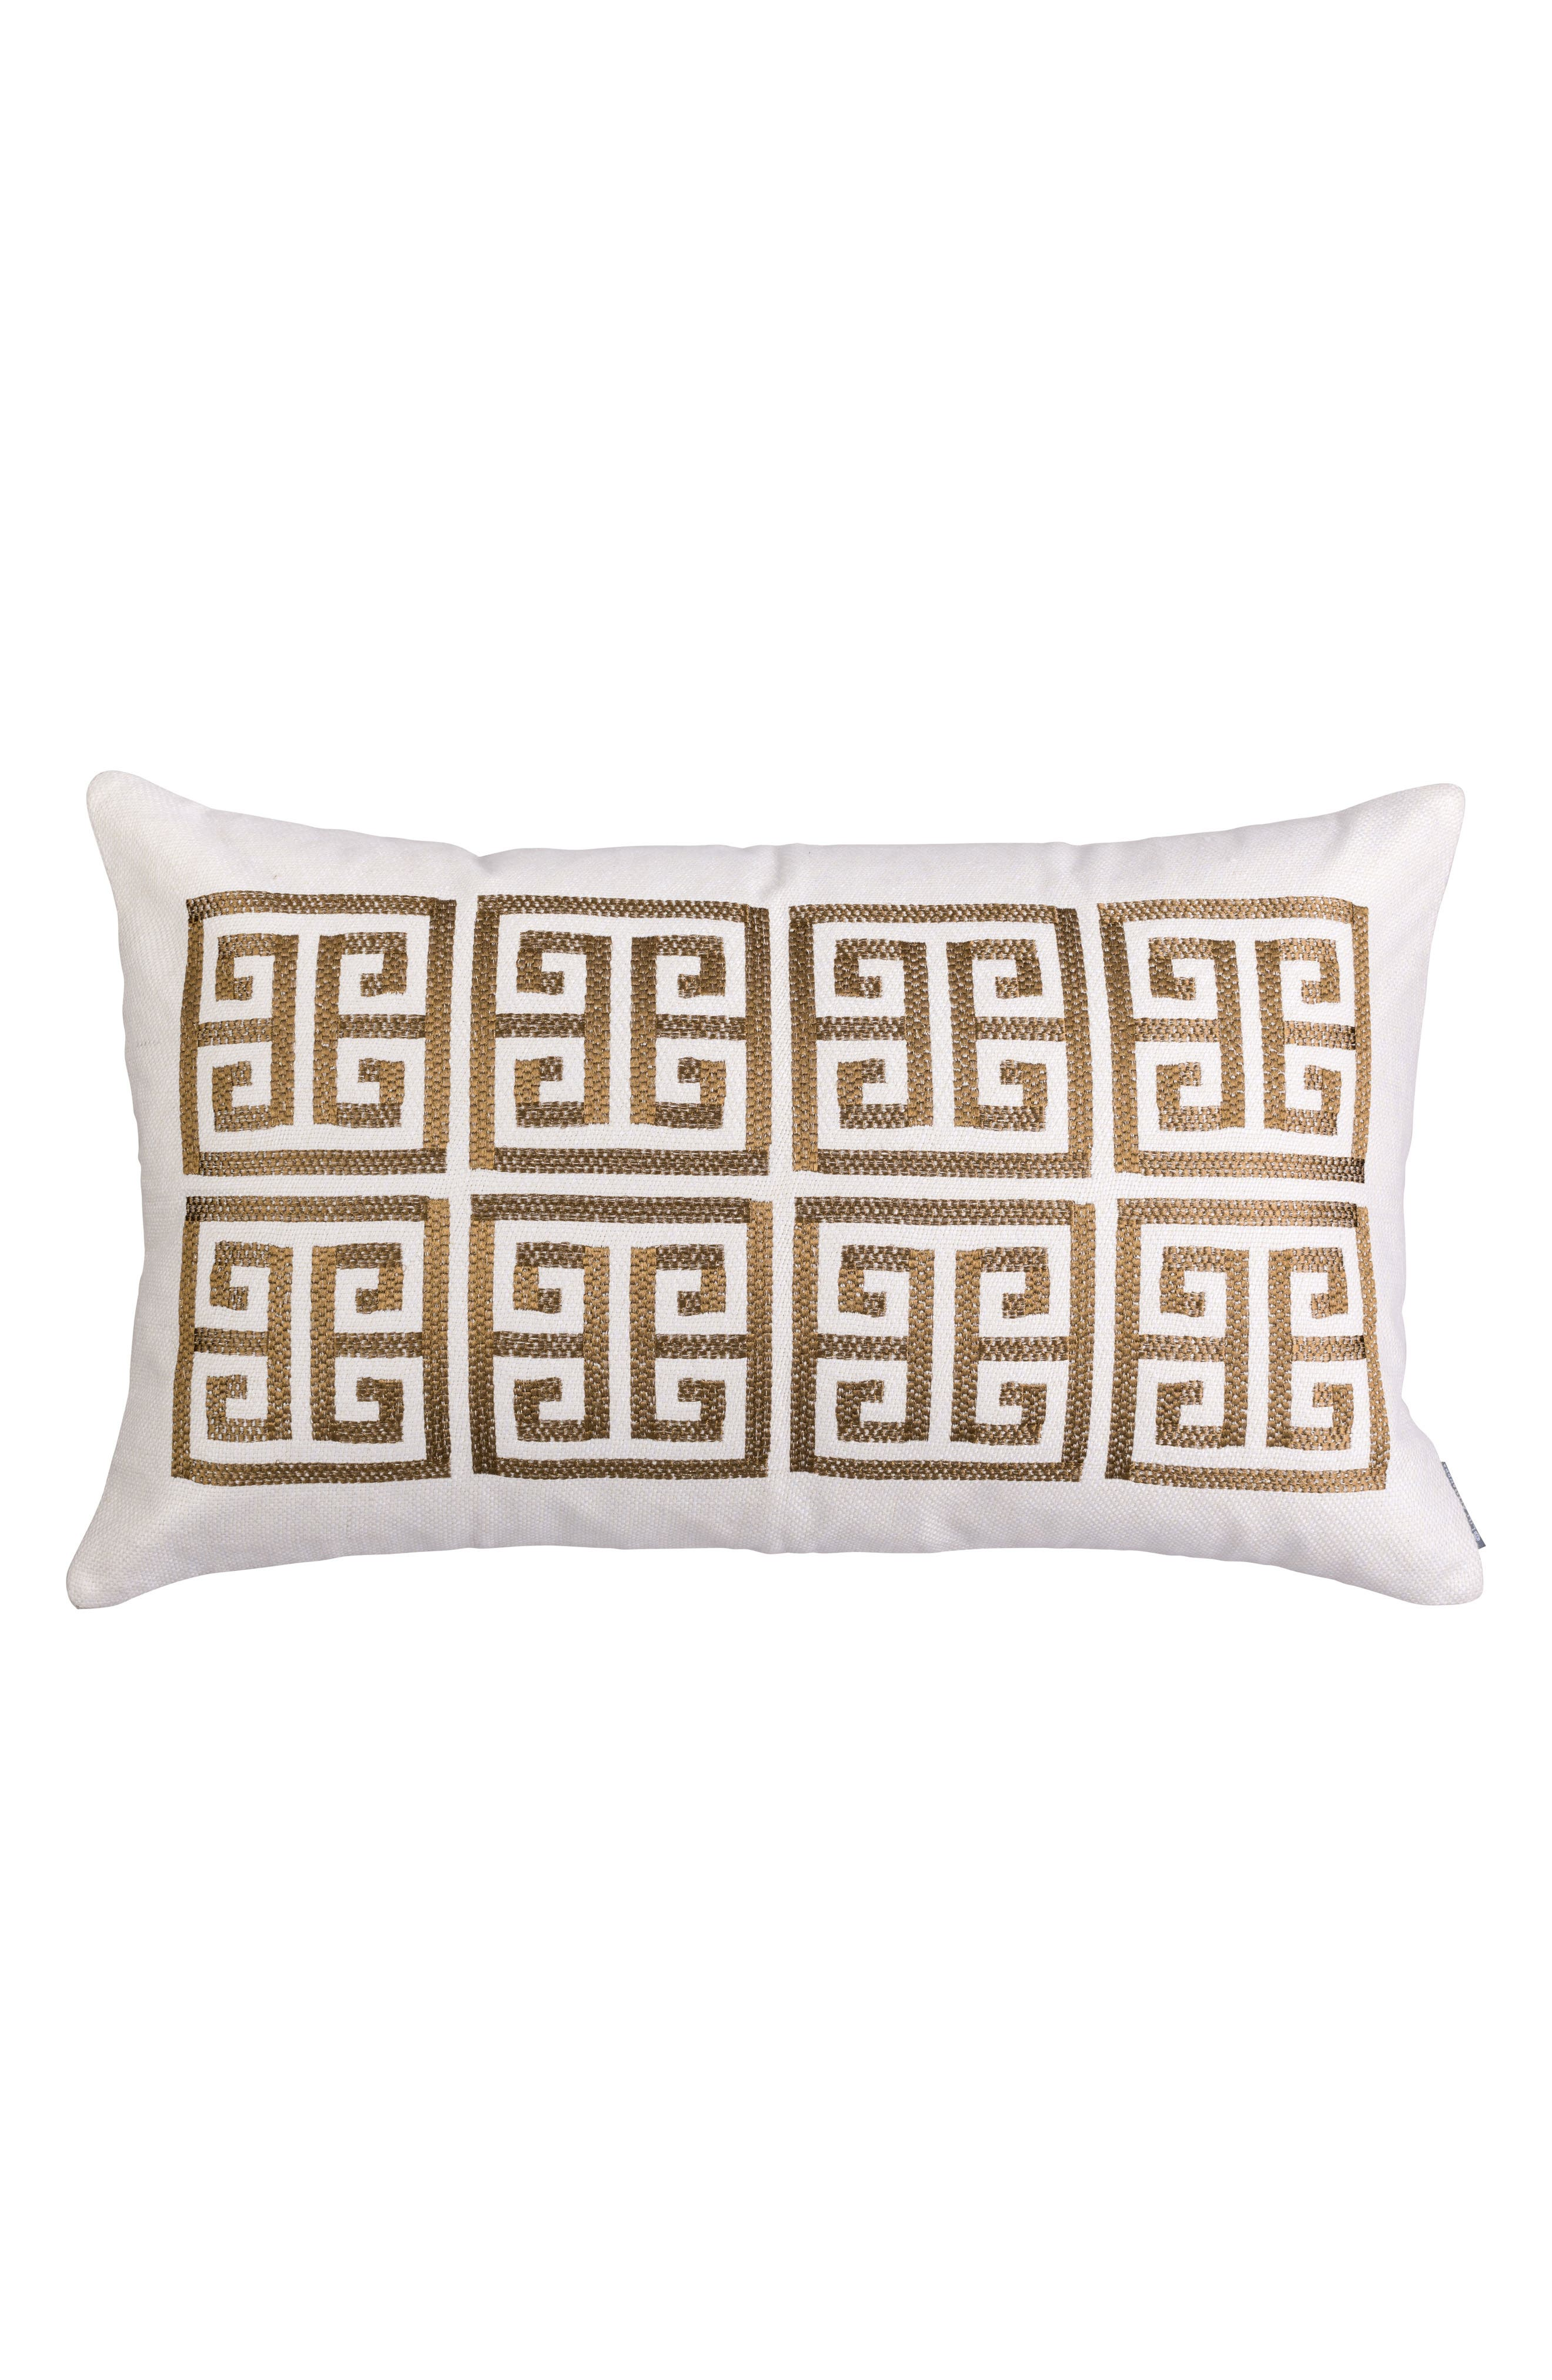 Guy Basket Weave Embroidery Accent Pillow,                             Main thumbnail 1, color,                             Gold